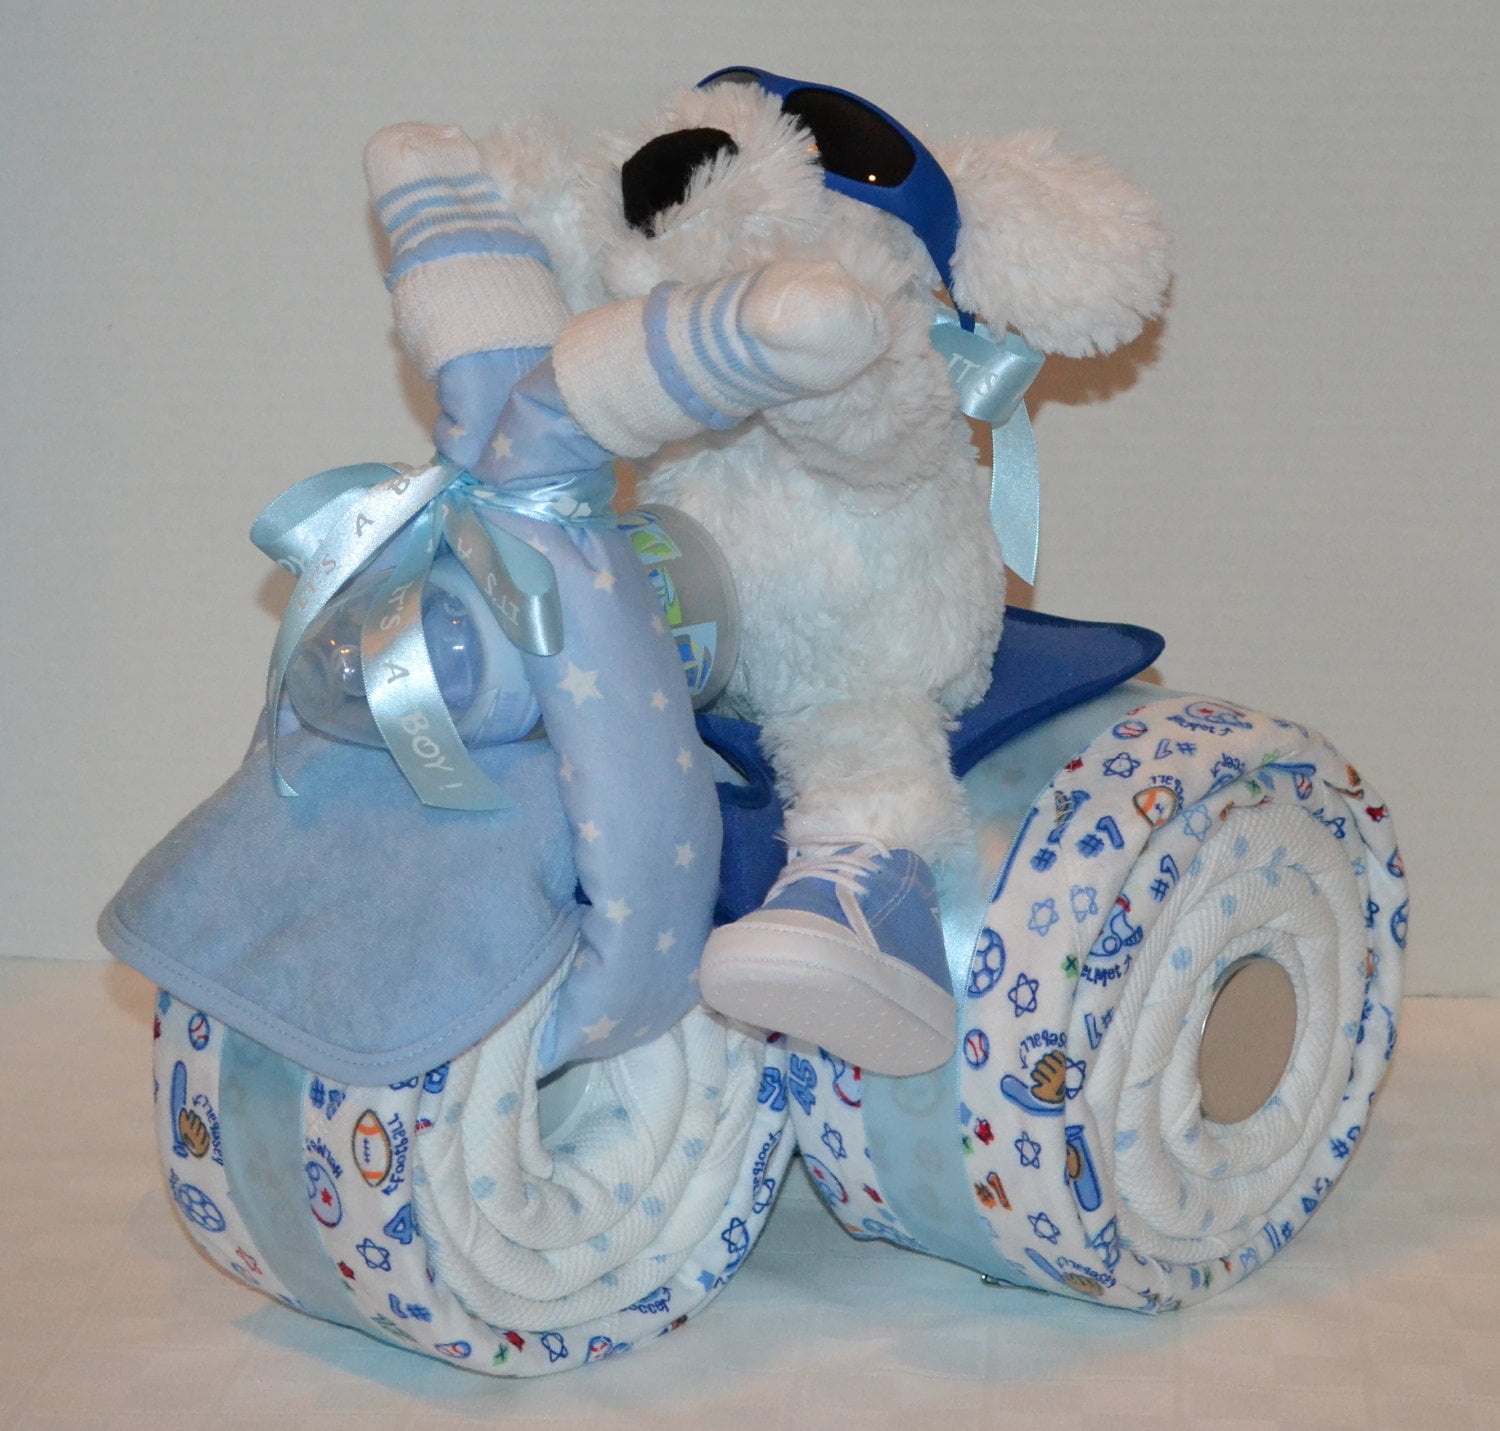 Why To Make Baby Shower Diaper Cakes